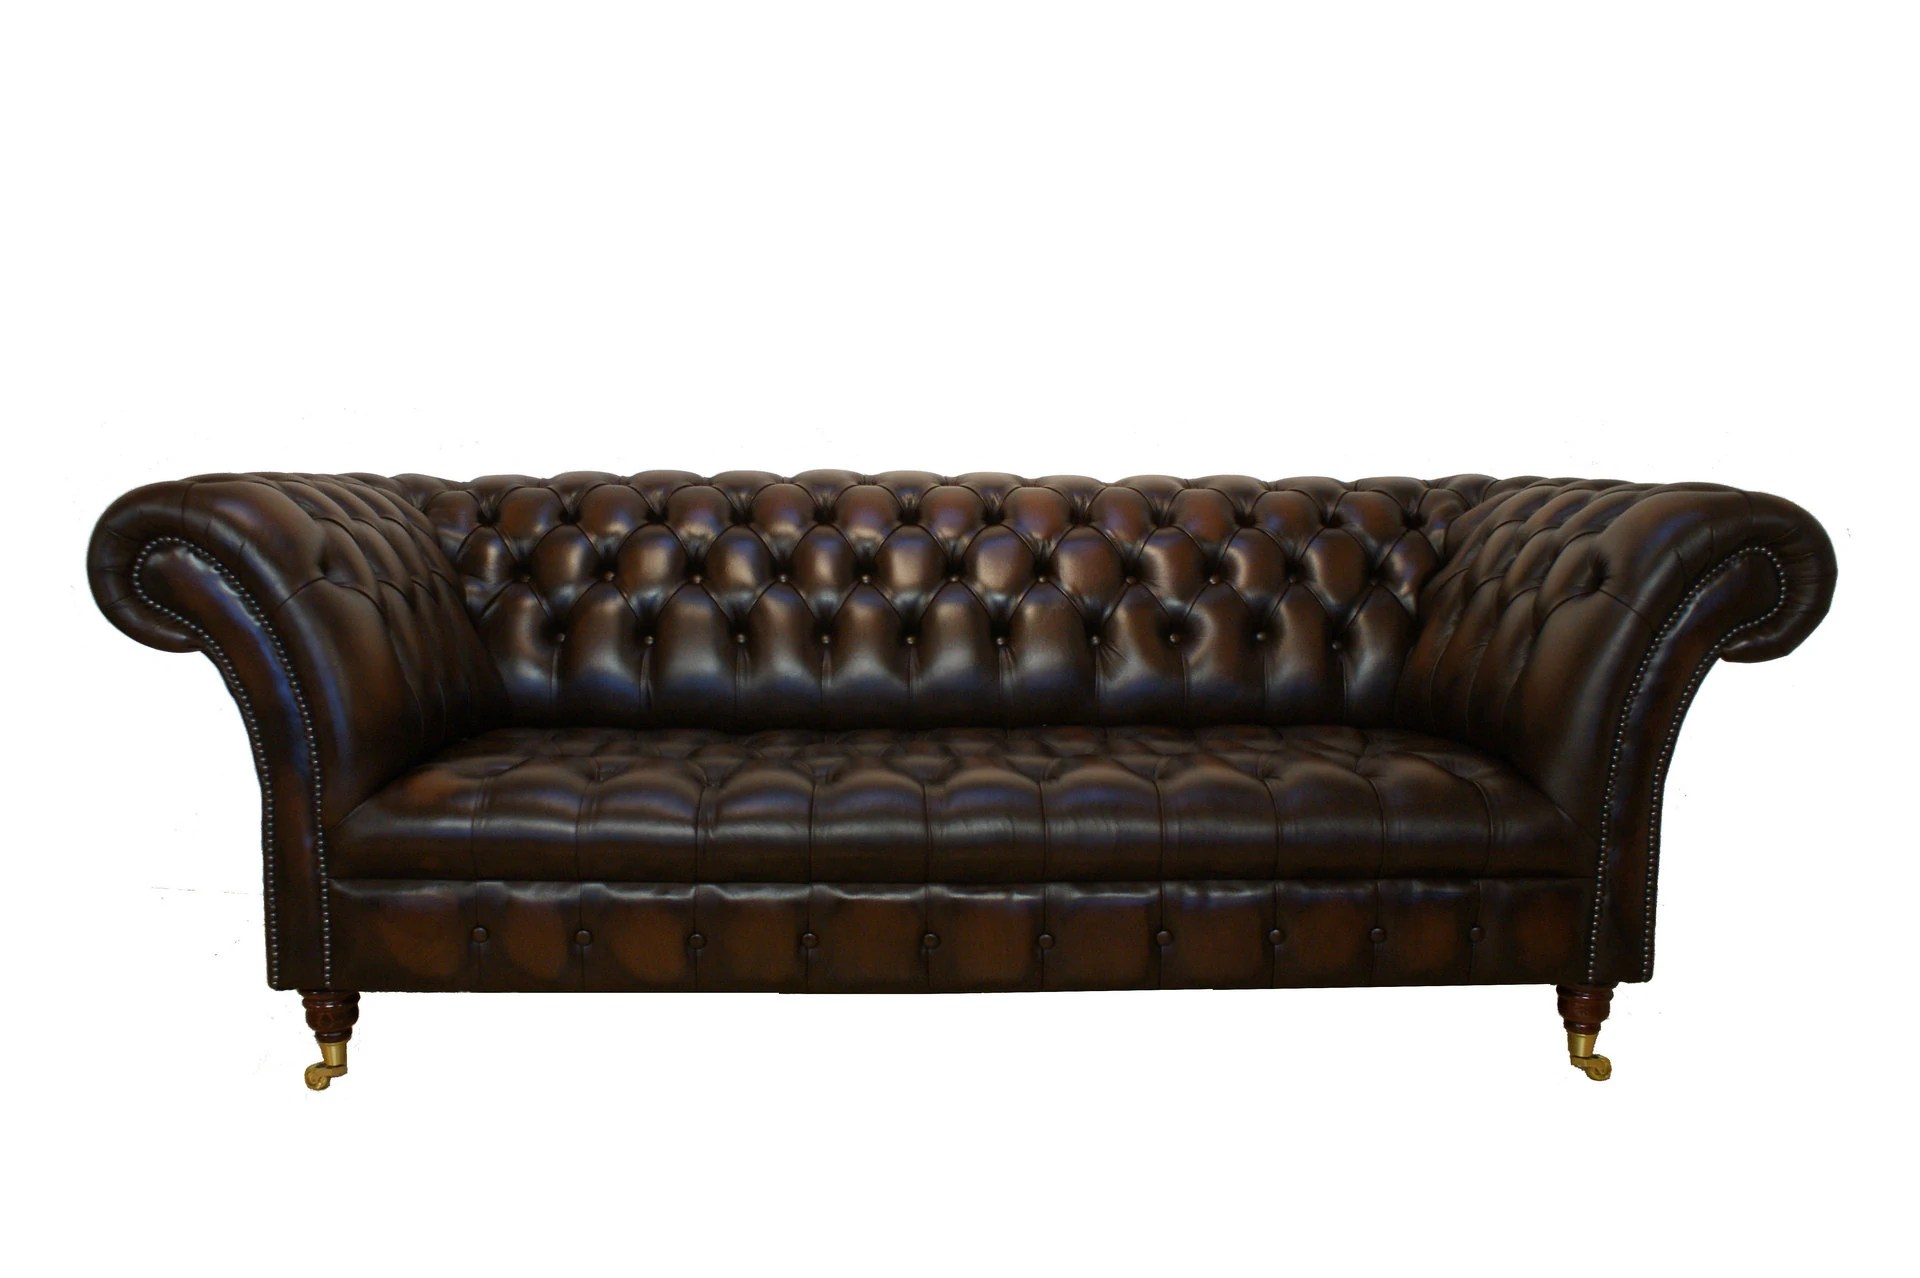 Chesterfield Lounge Sofa Hitchhikers Fandom Powered By Wikia